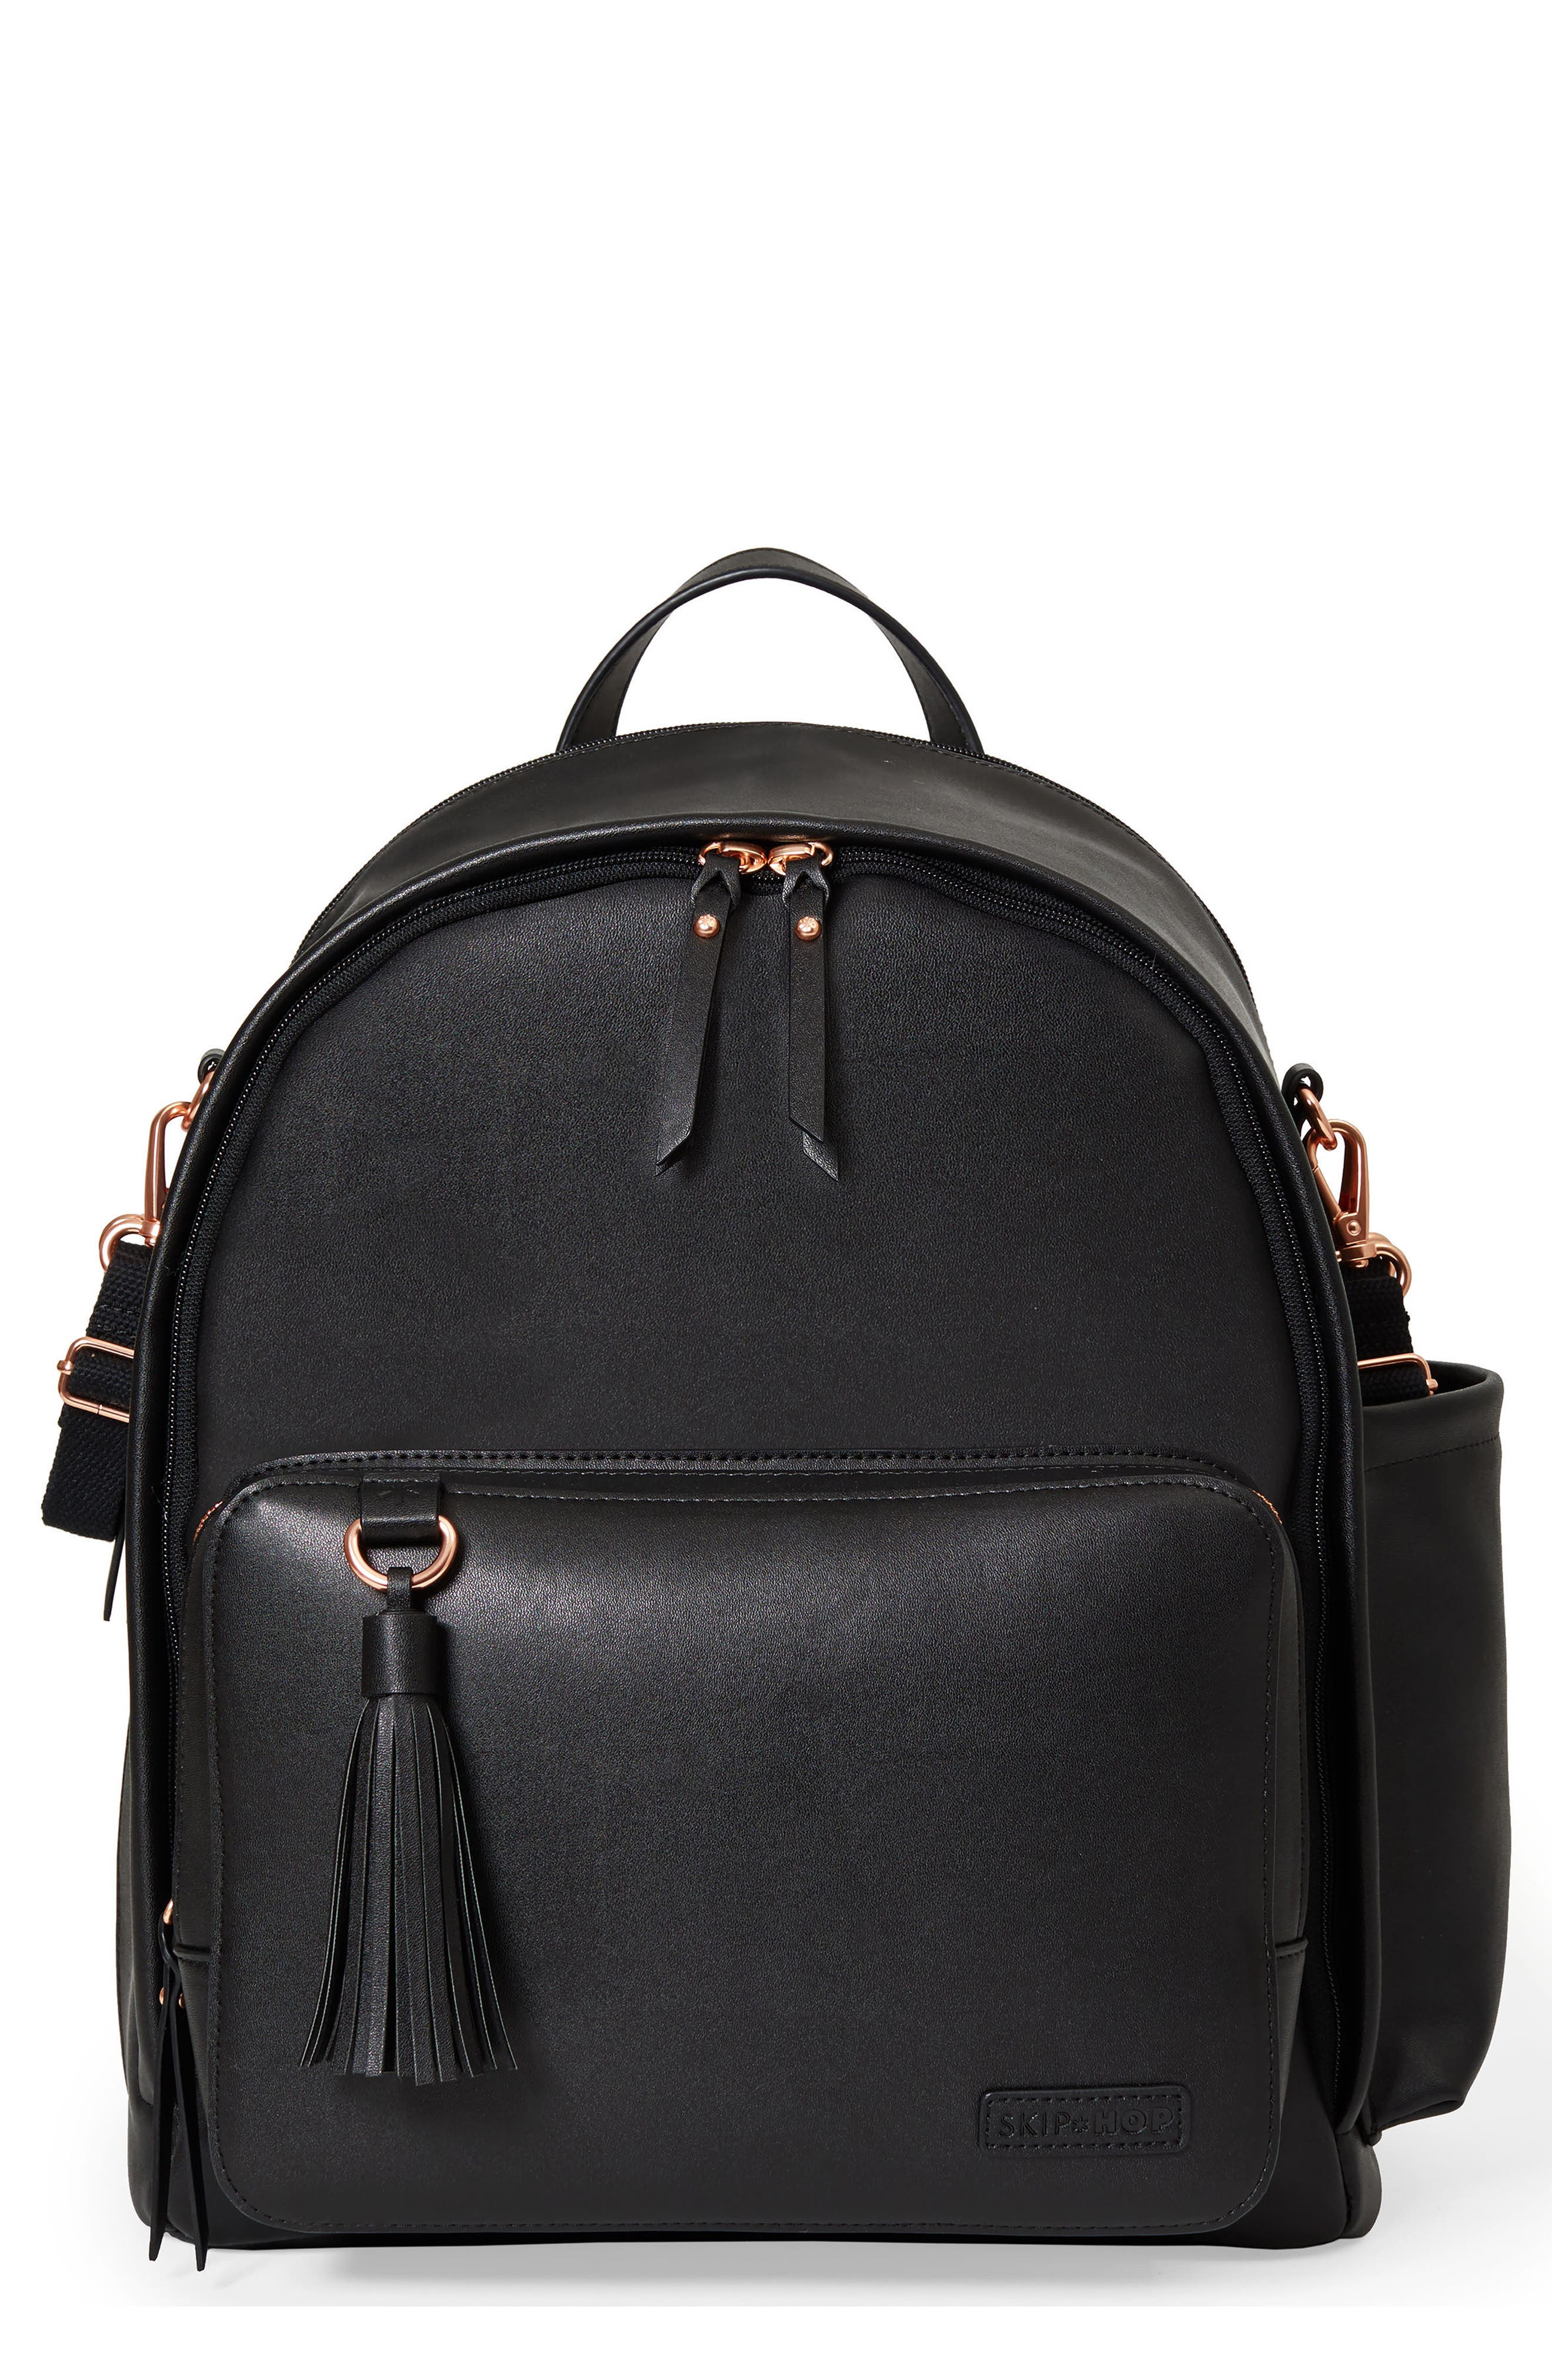 Greenwich Simply Chic Diaper Backpack,                             Main thumbnail 1, color,                             Black